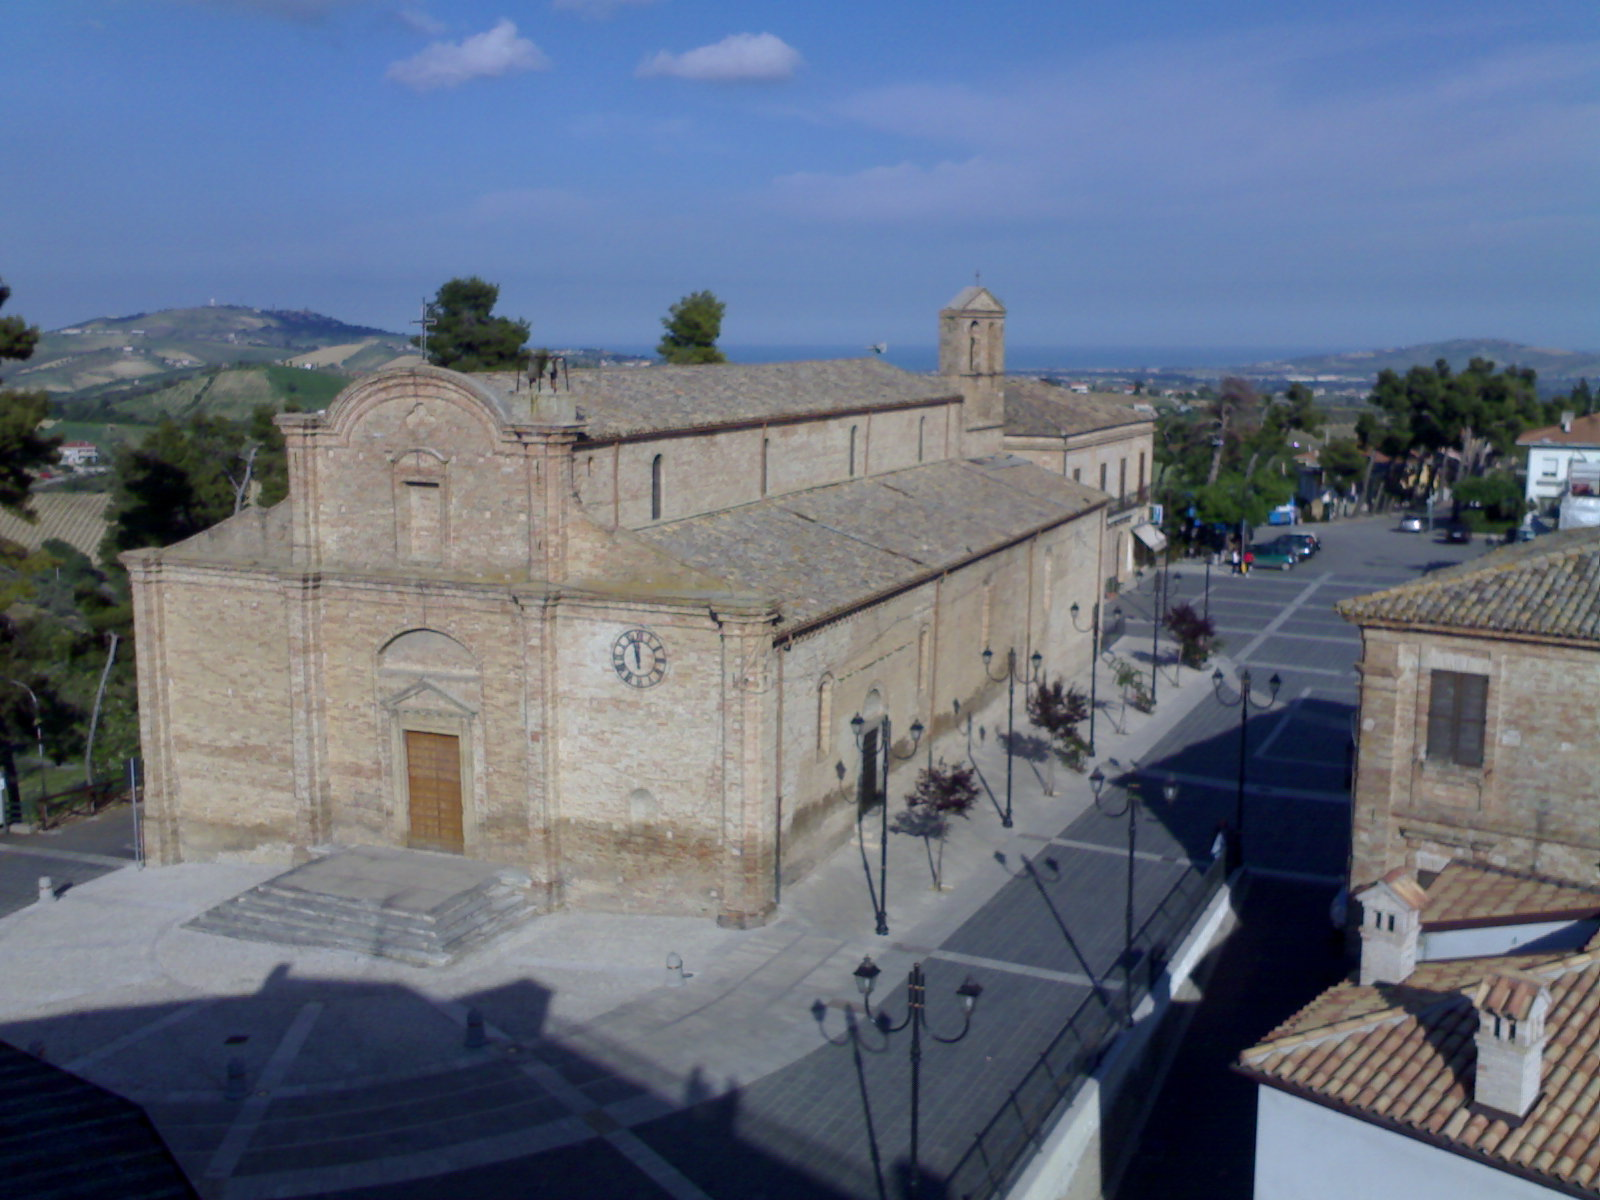 The church of San Salvatore